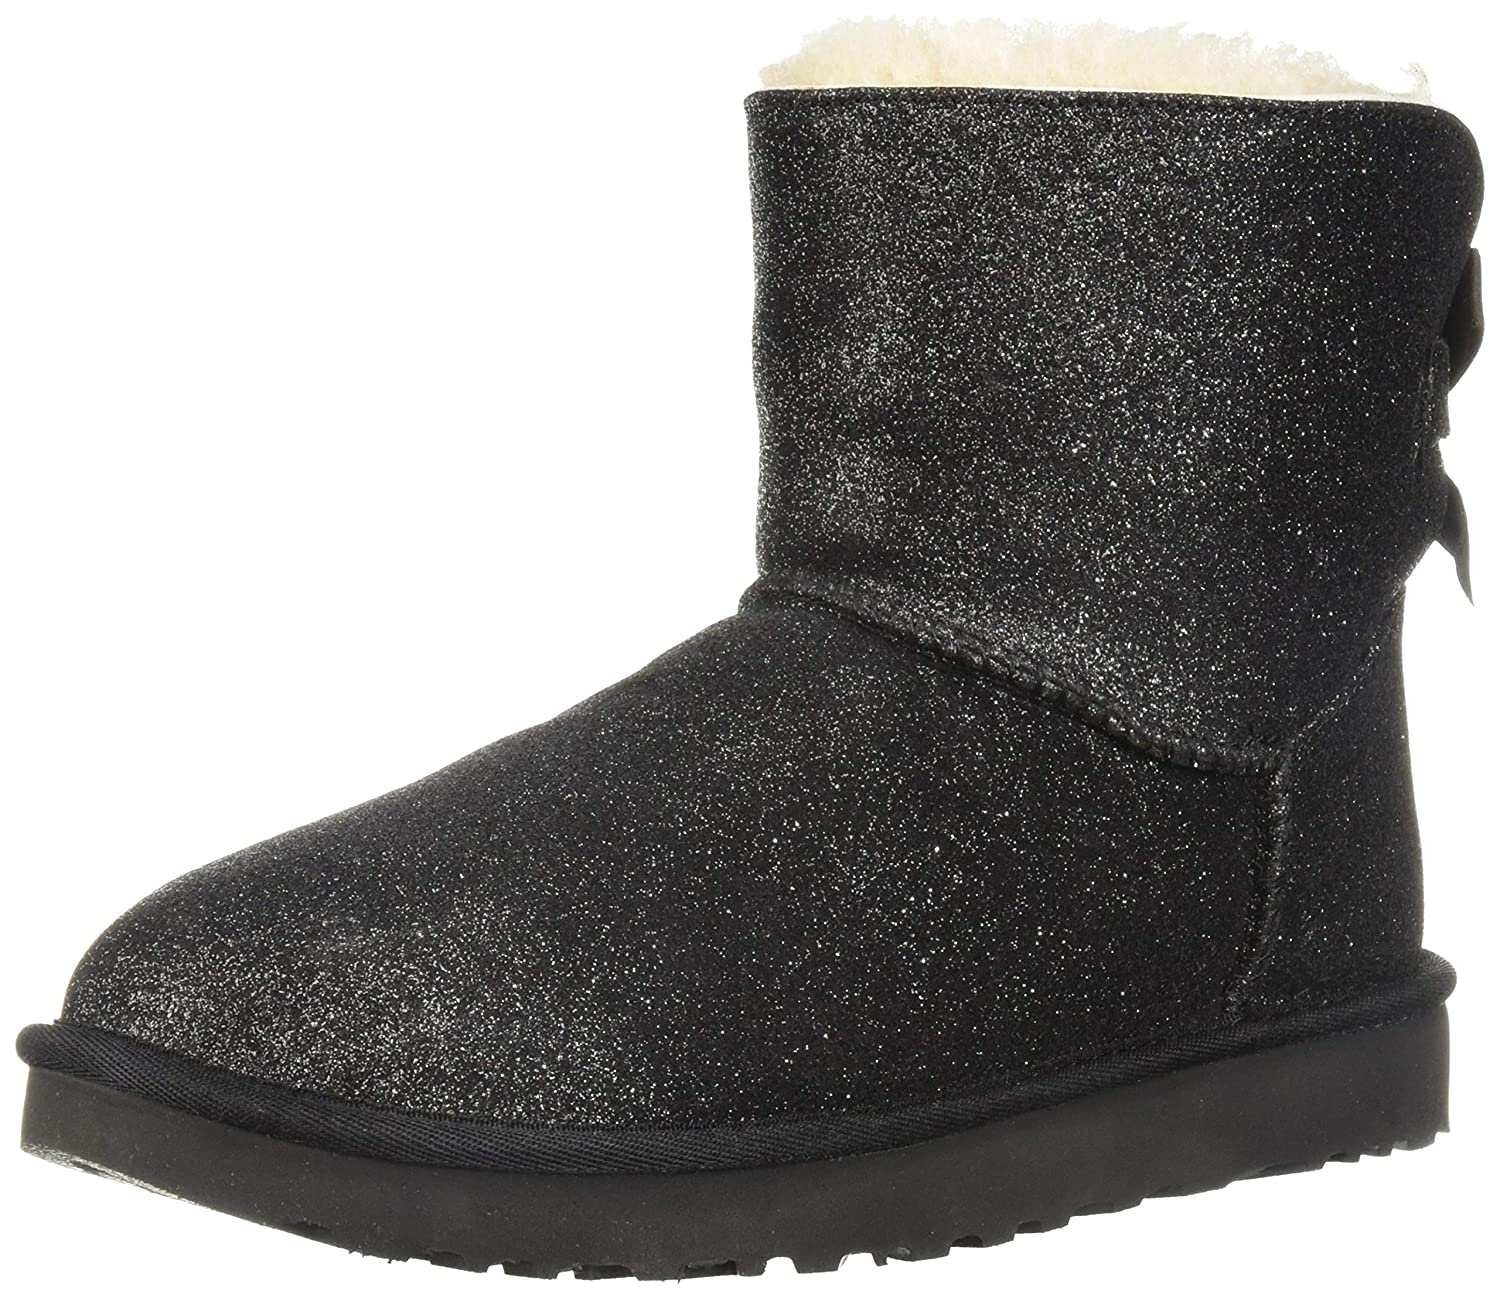 ce49f437968 UGG Mini Bailey Bow Sparkle 1100053 W/SLVR: Amazon.co.uk: Shoes & Bags